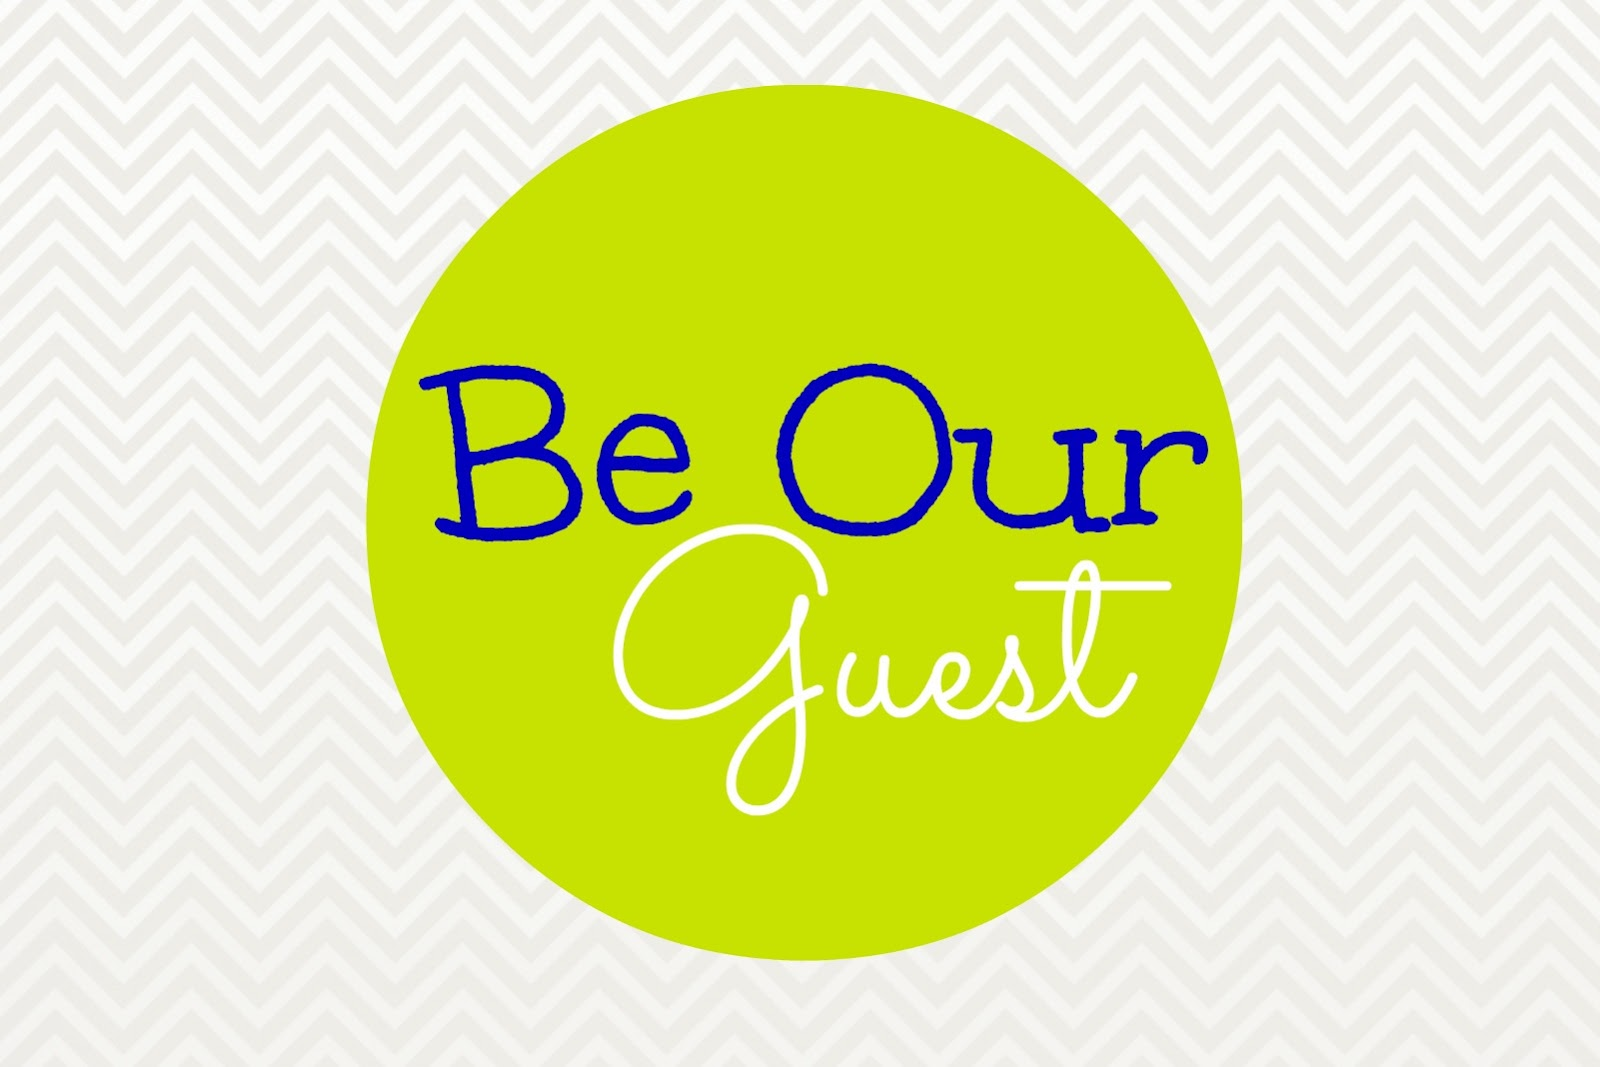 photograph regarding Be Our Guest Printable identify No cost Printables for the visitor house! The Motivated Hive